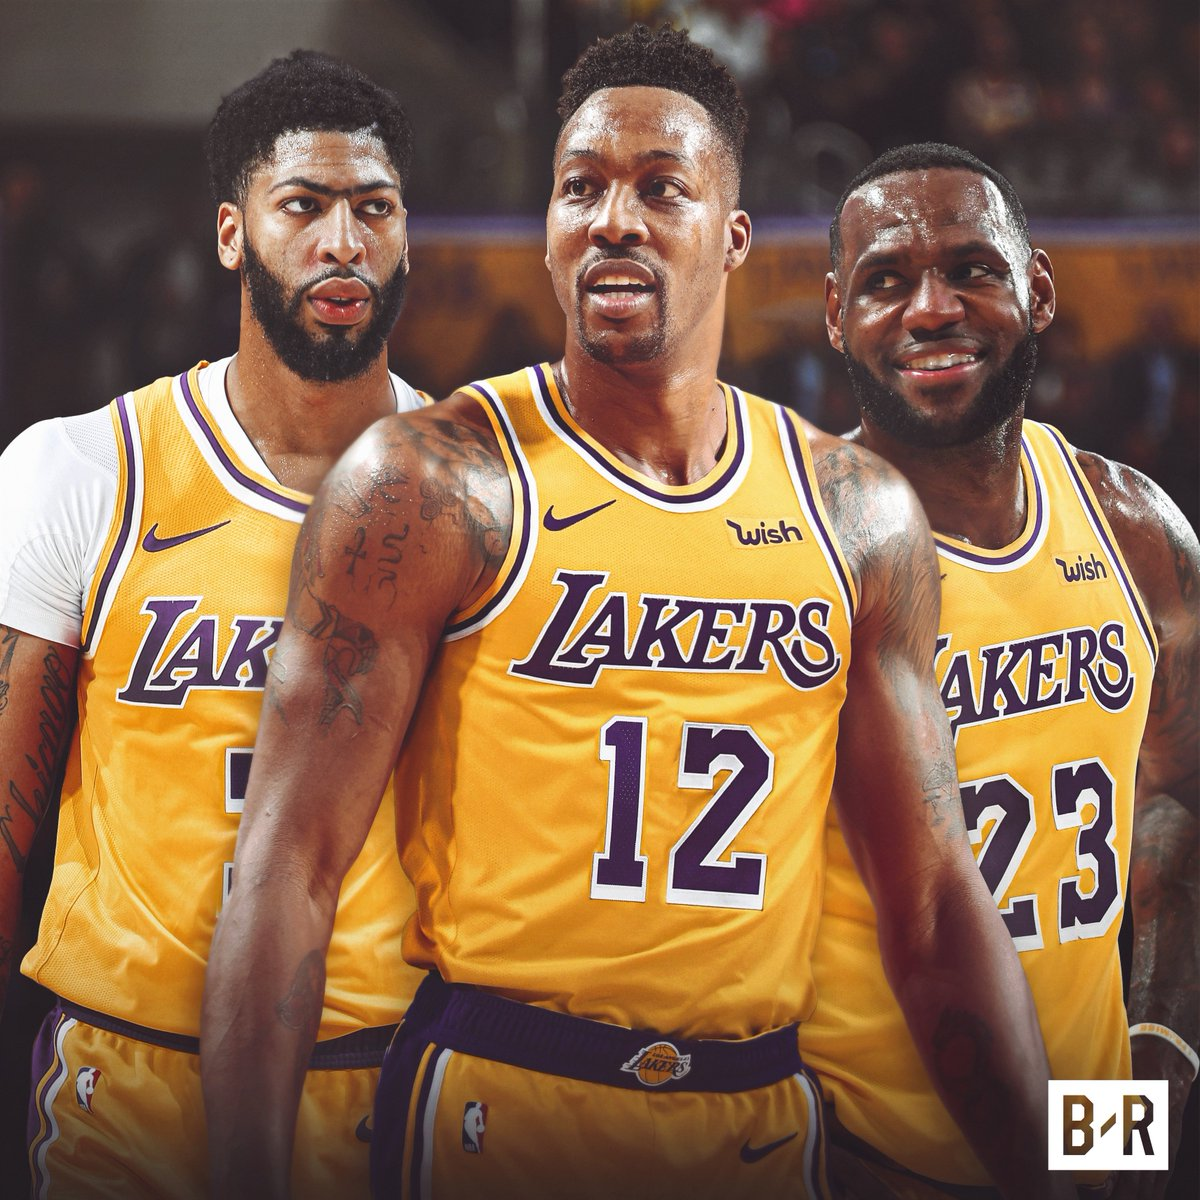 @BleacherReport's photo on Dwight Howard